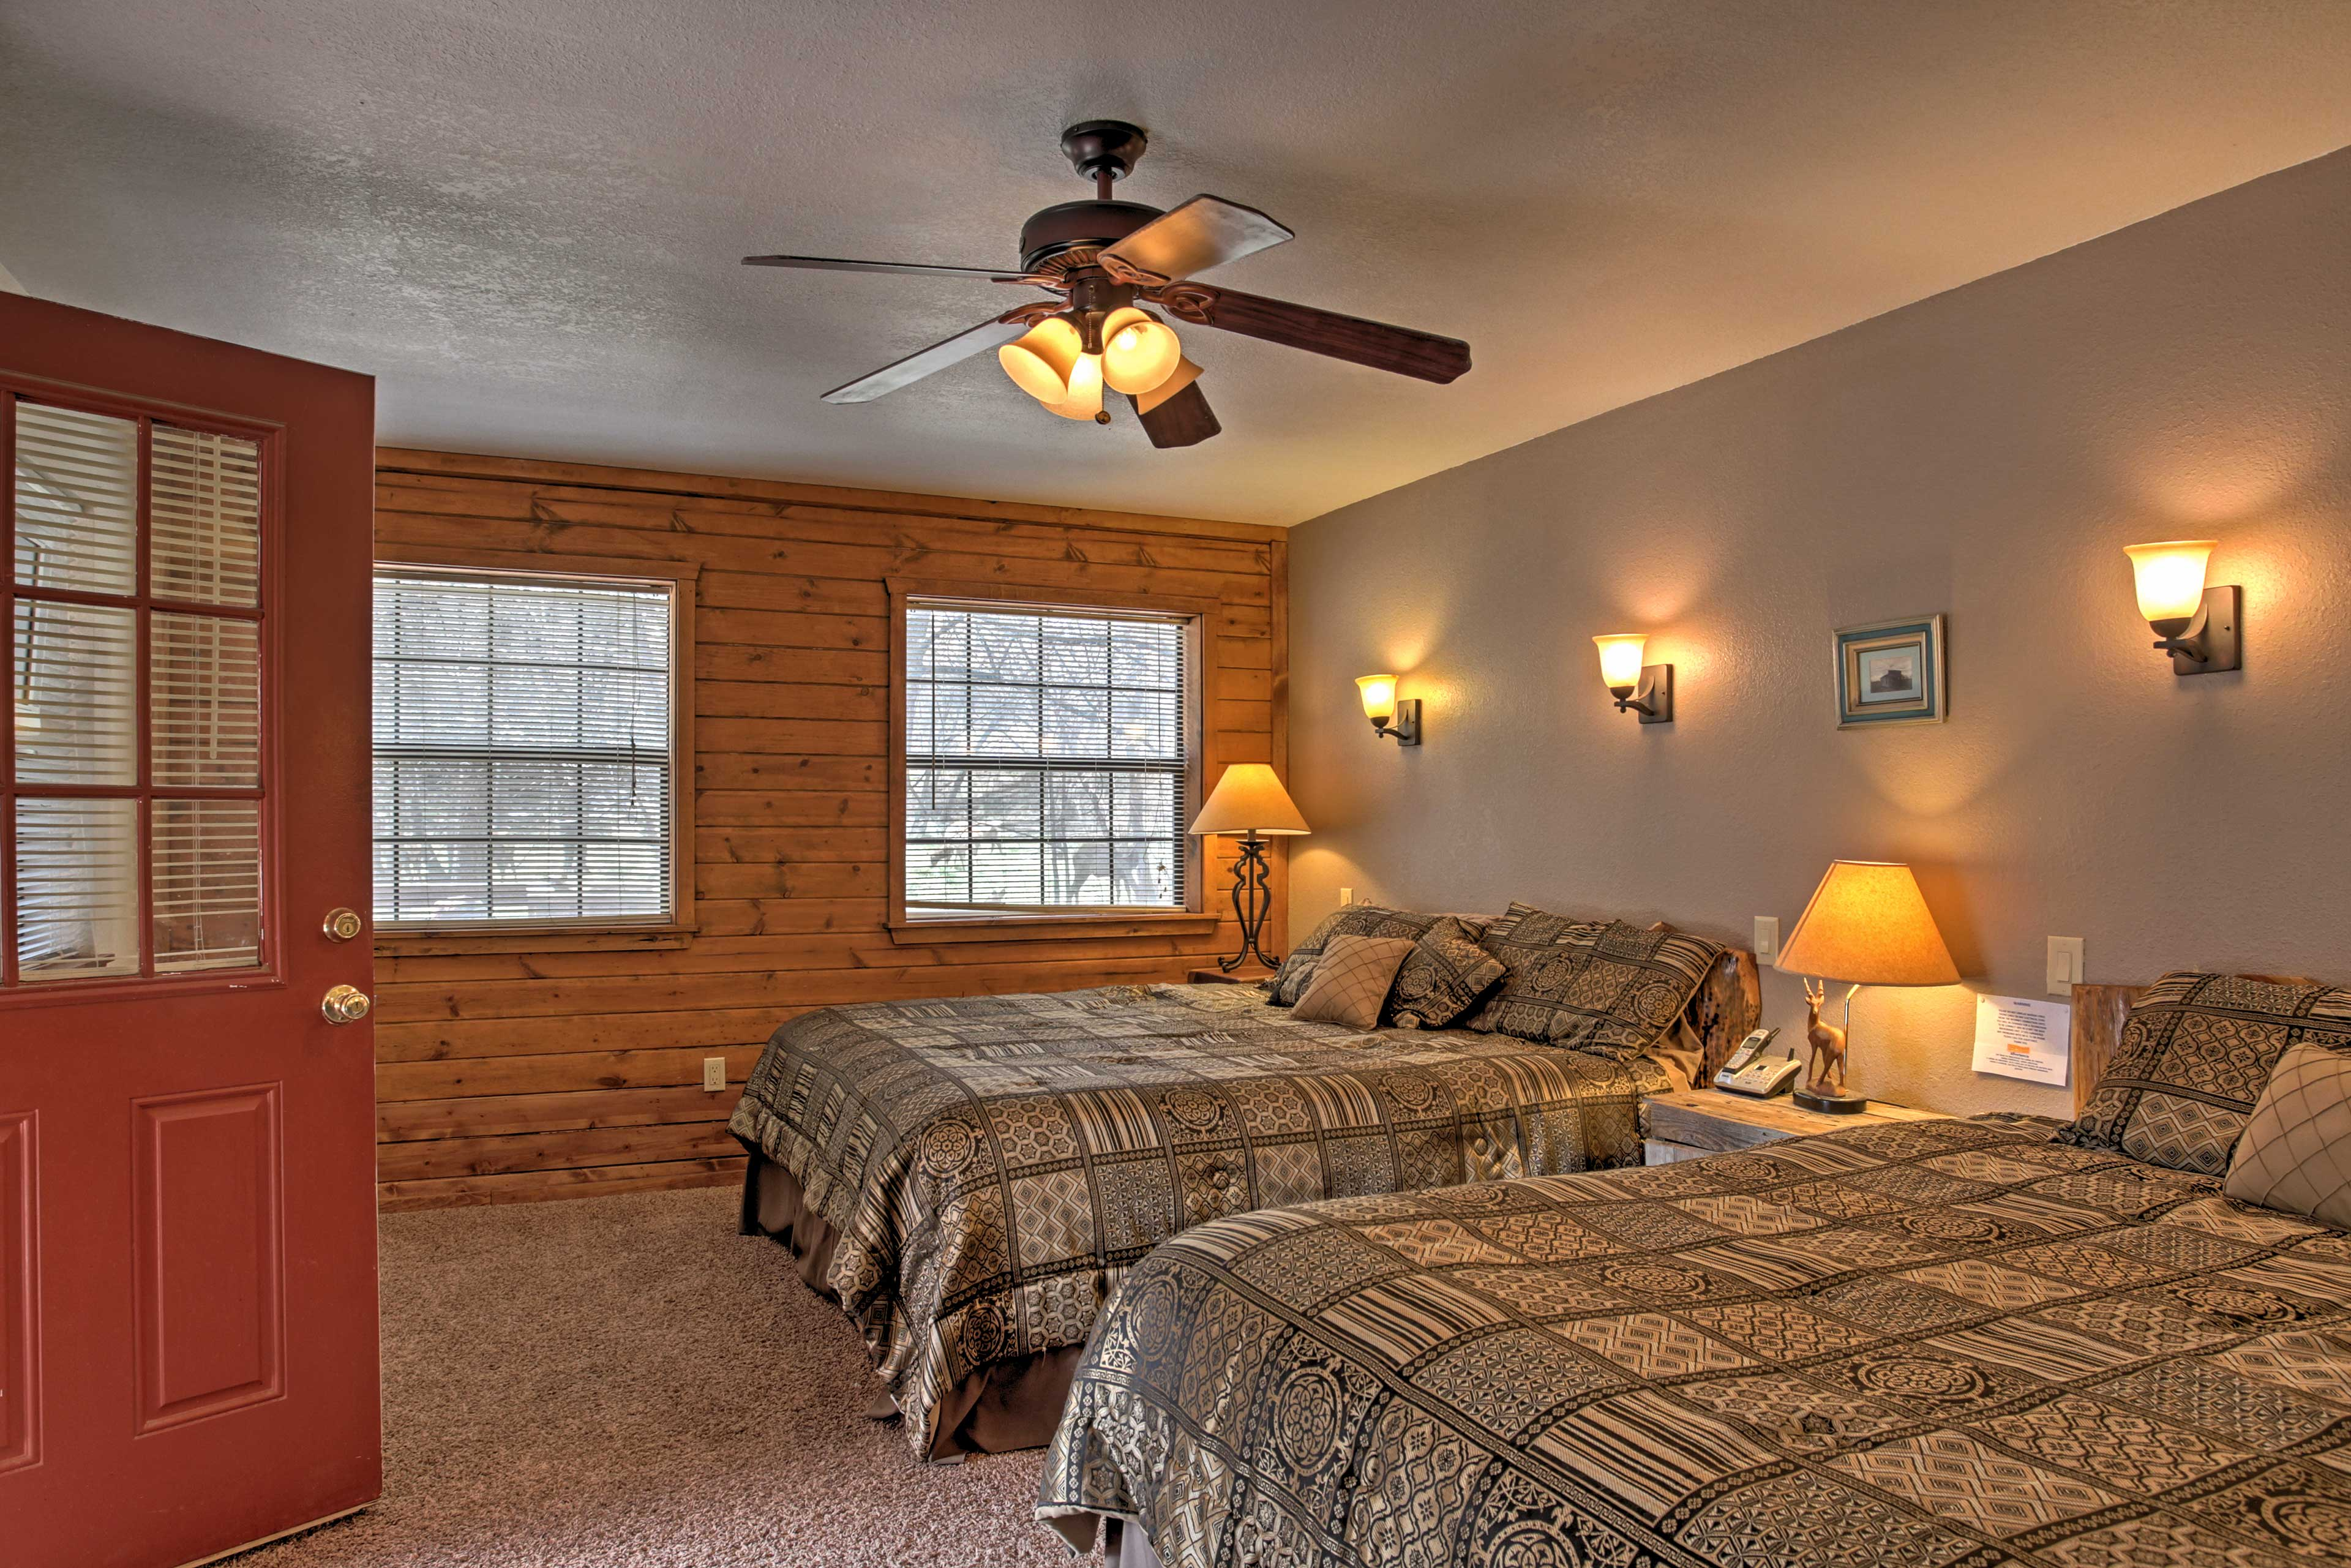 This bedroom features 2 king-sized beds, great for siblings or friends sharing a room.